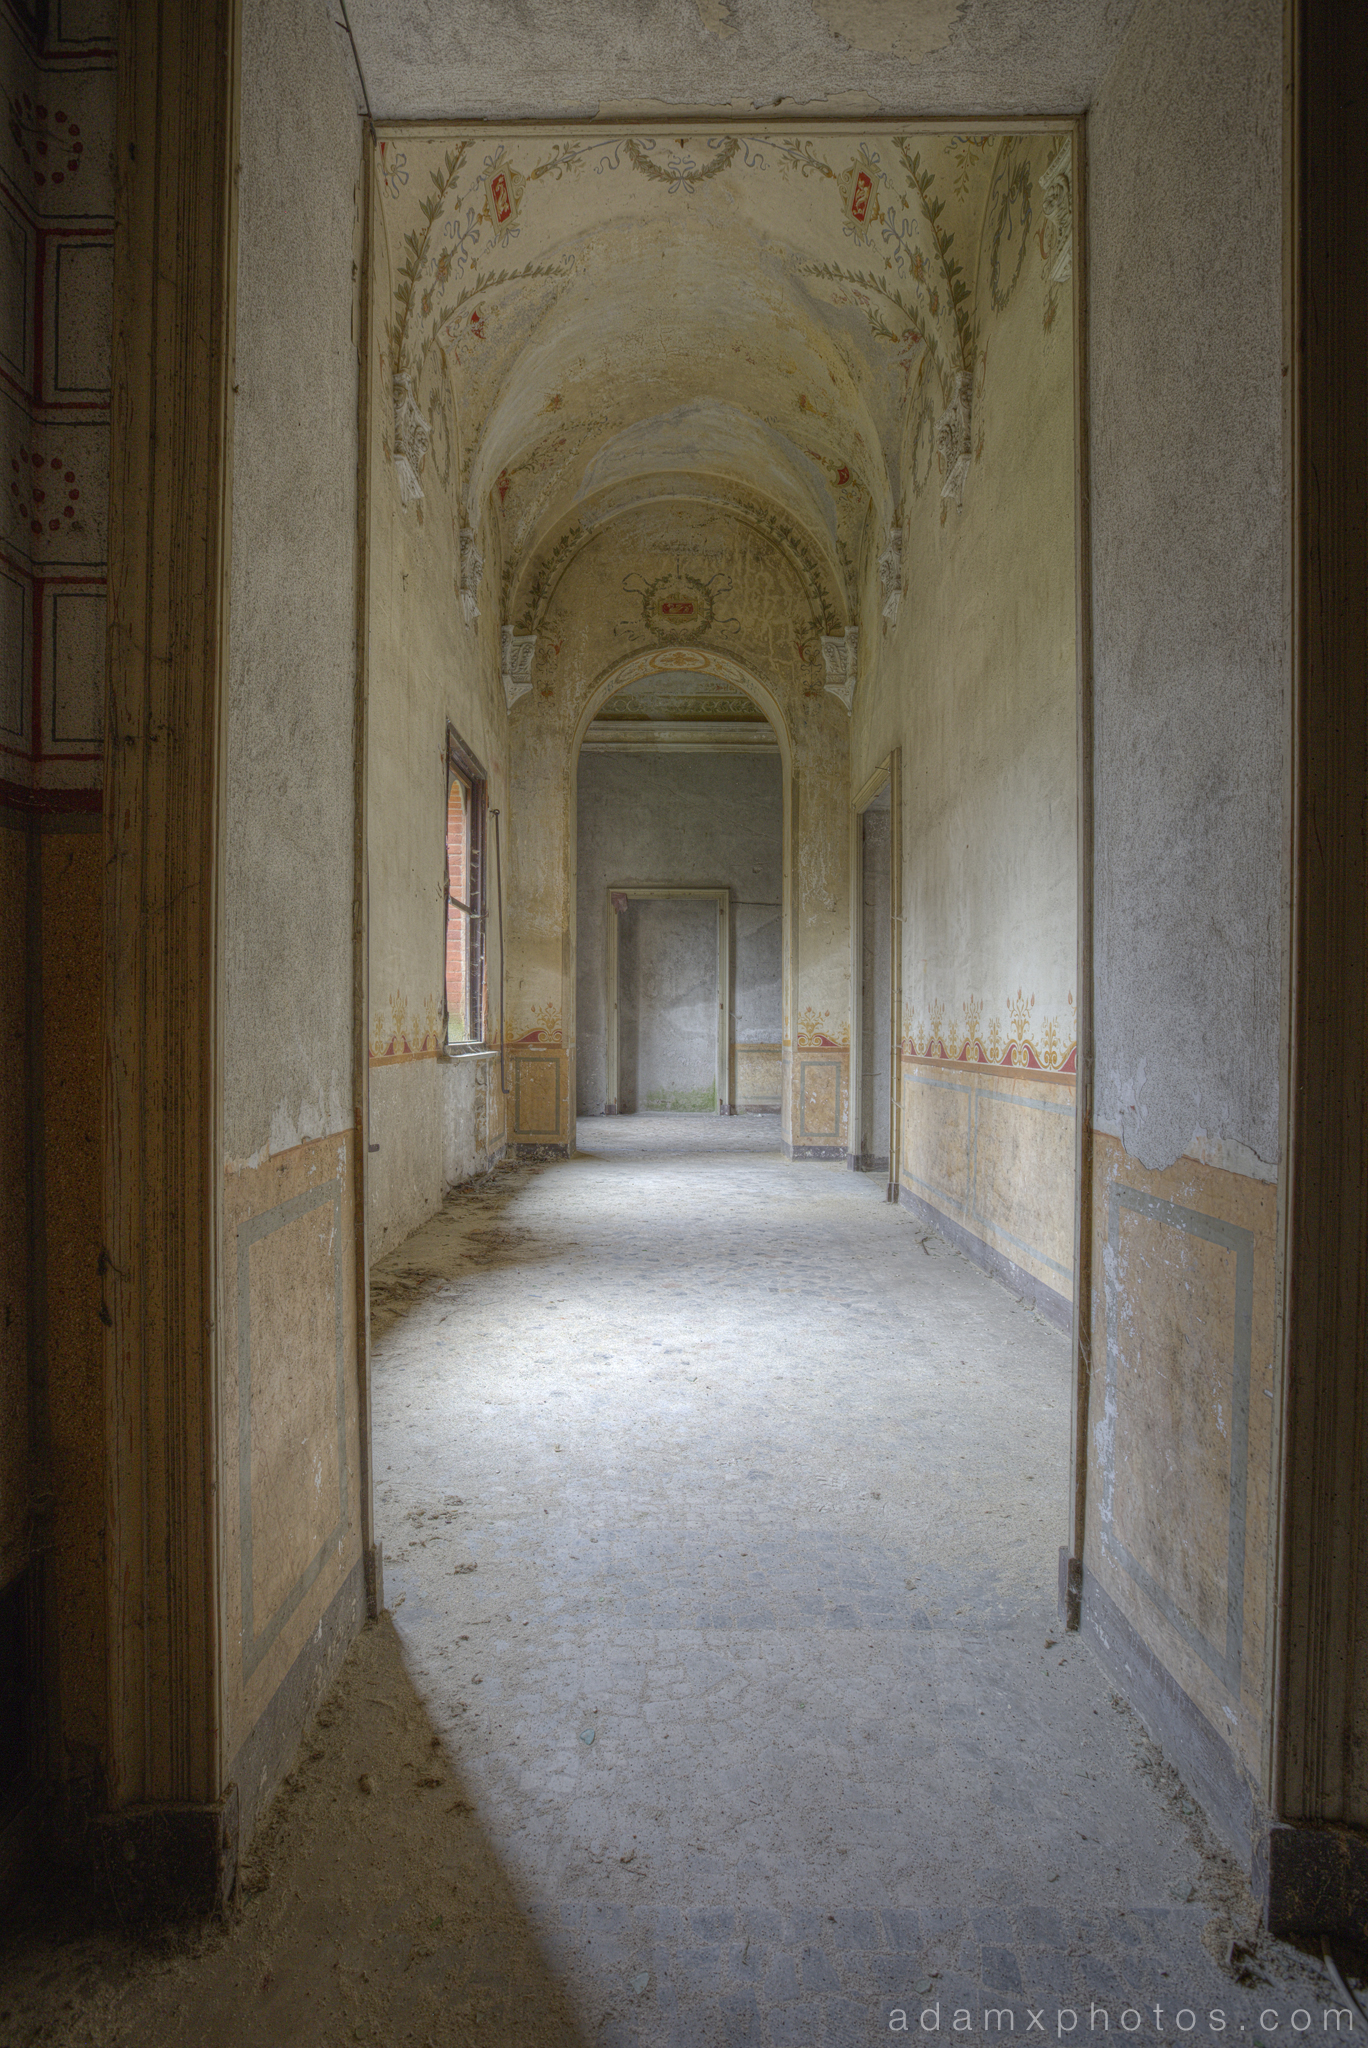 Castello di R Italy castle Urbex Adam X Urban Exploration ornate painted hallway corridor walls murals fresco frescoes detail flowers photo photos report decay detail UE abandoned derelict unused empty disused decay decayed decaying grimy grime